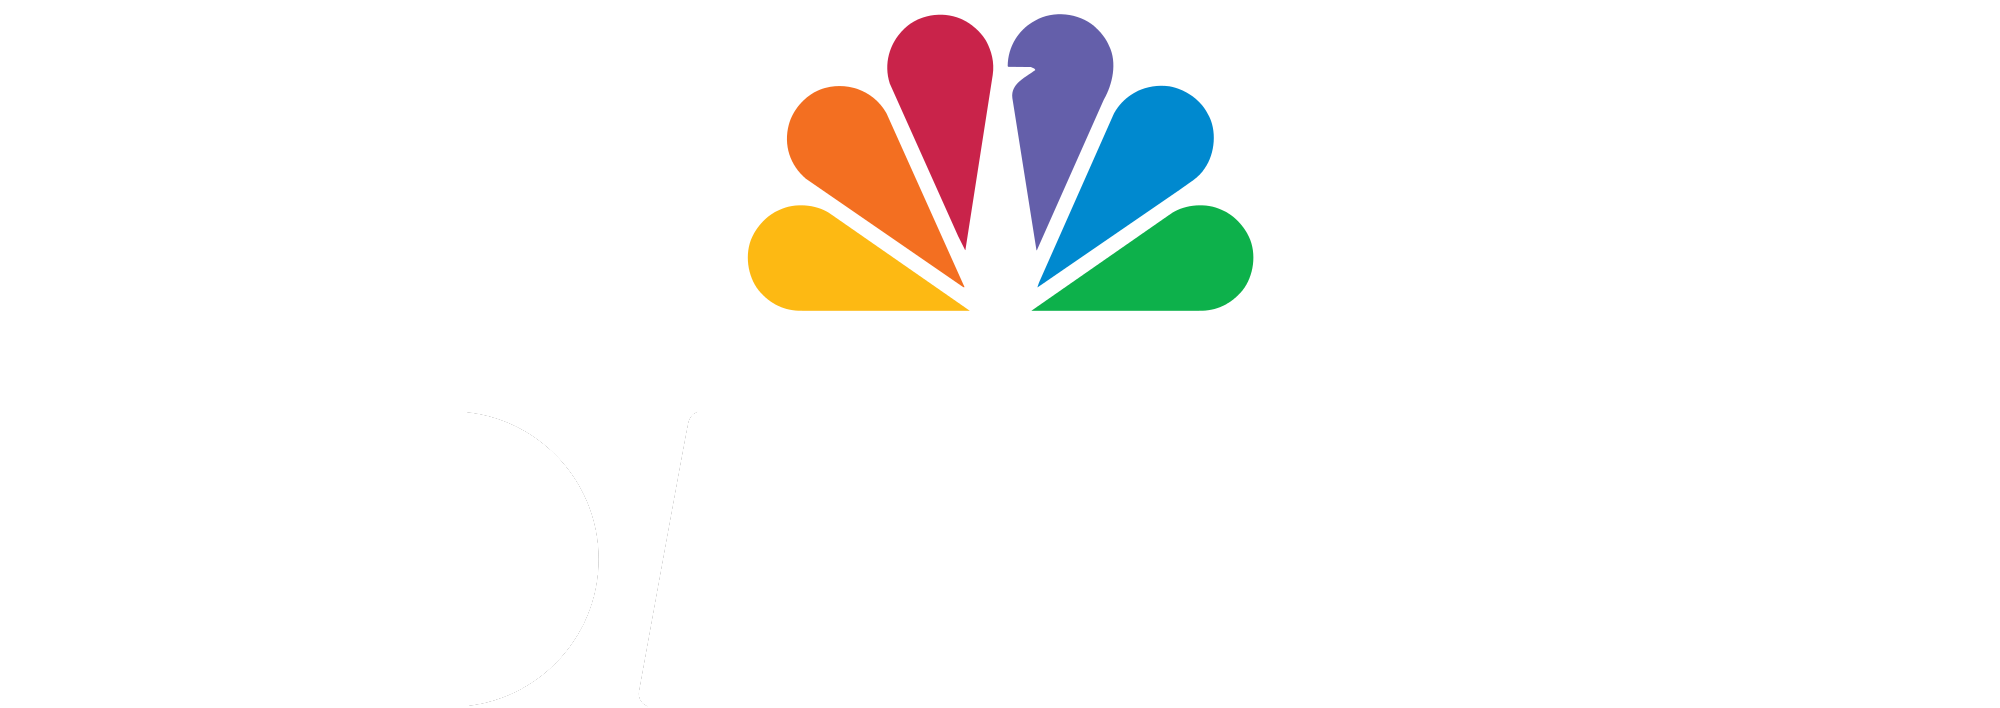 Download Hd Comcast Logo Transparent Nbc Comcast Logo White Transparent Png Image Nicepng Com